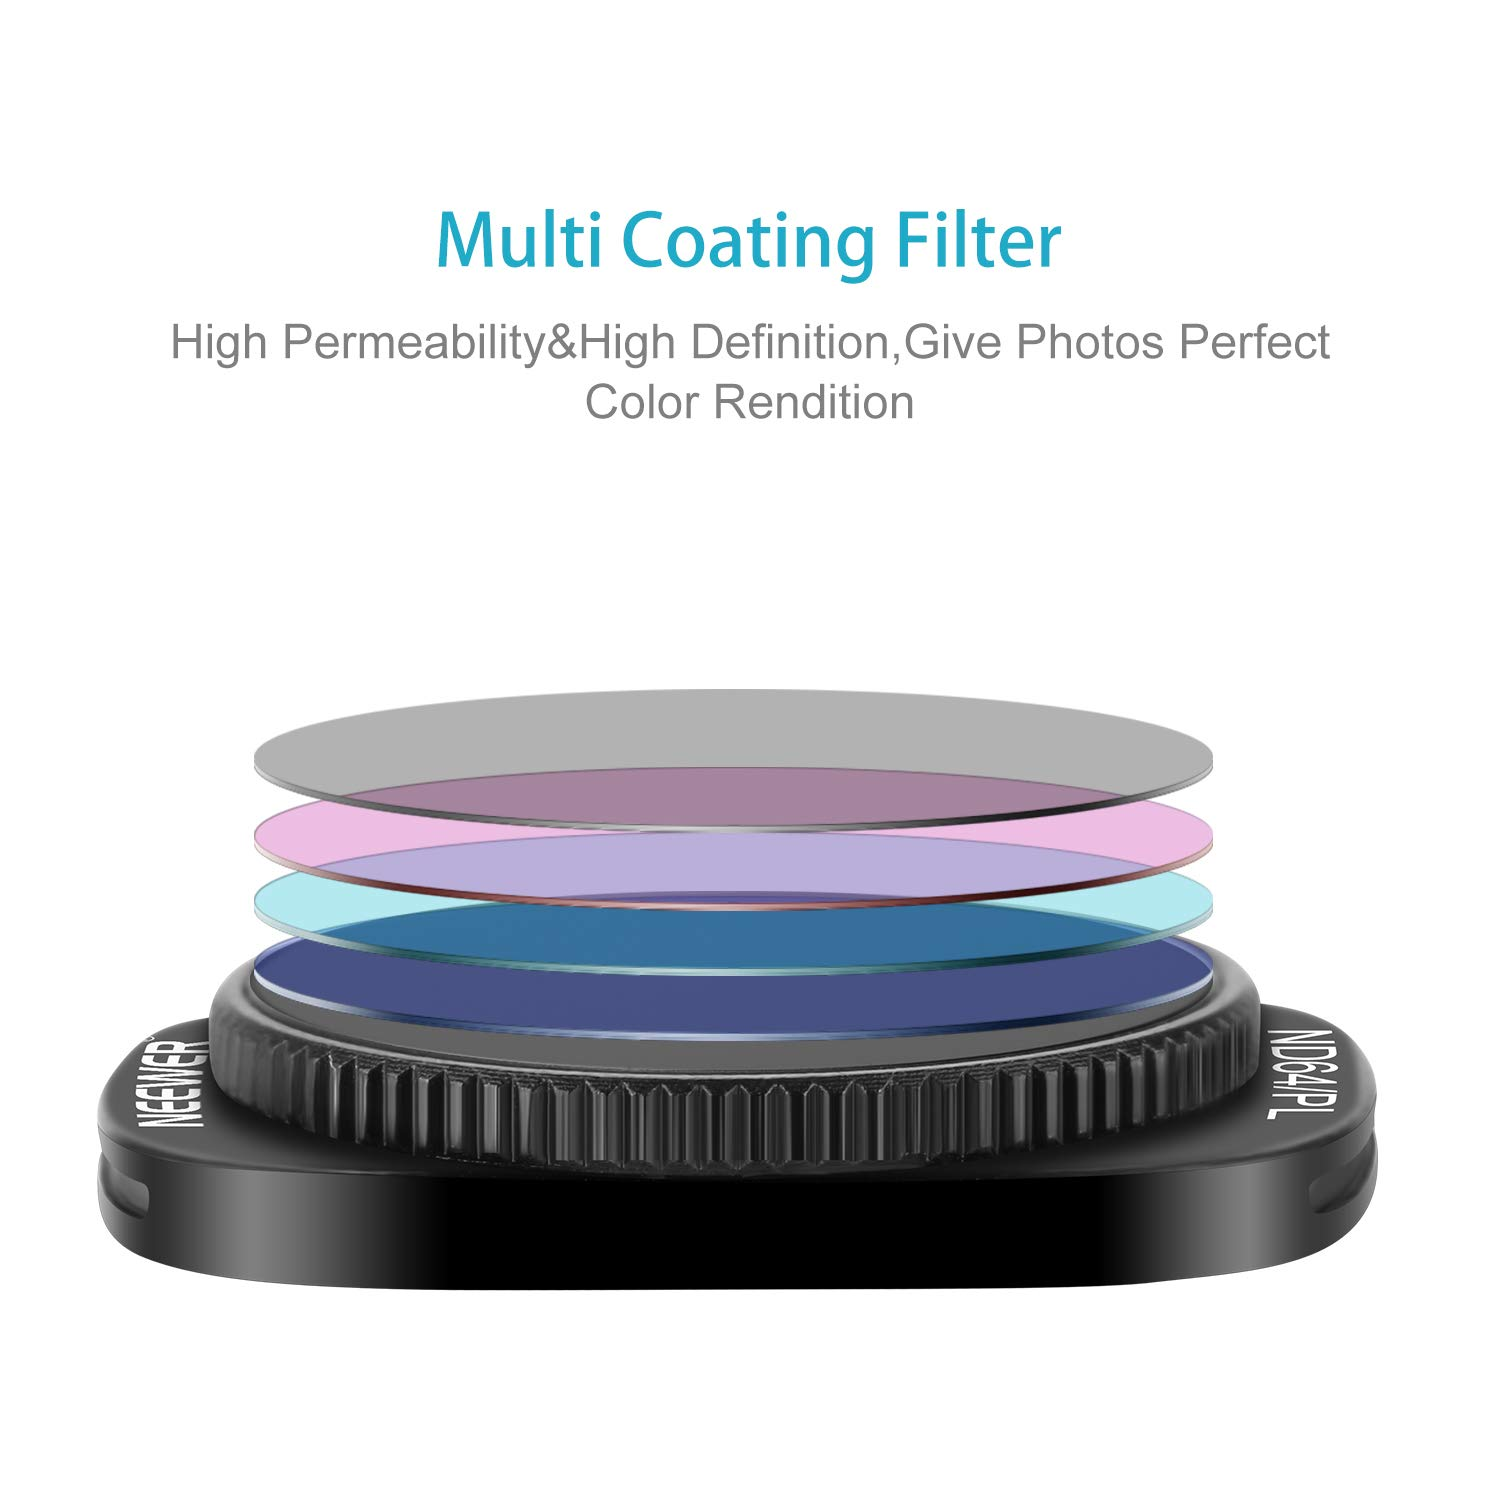 ND8//PL Black Neewer Magnetic ND//PL Filter Kit for DJI Osmo Pocket Camera-4 Pieces Made of Optical Glass and Aviation Aluminum Frame ND16//PL and ND32//PL ND64//PL Filter